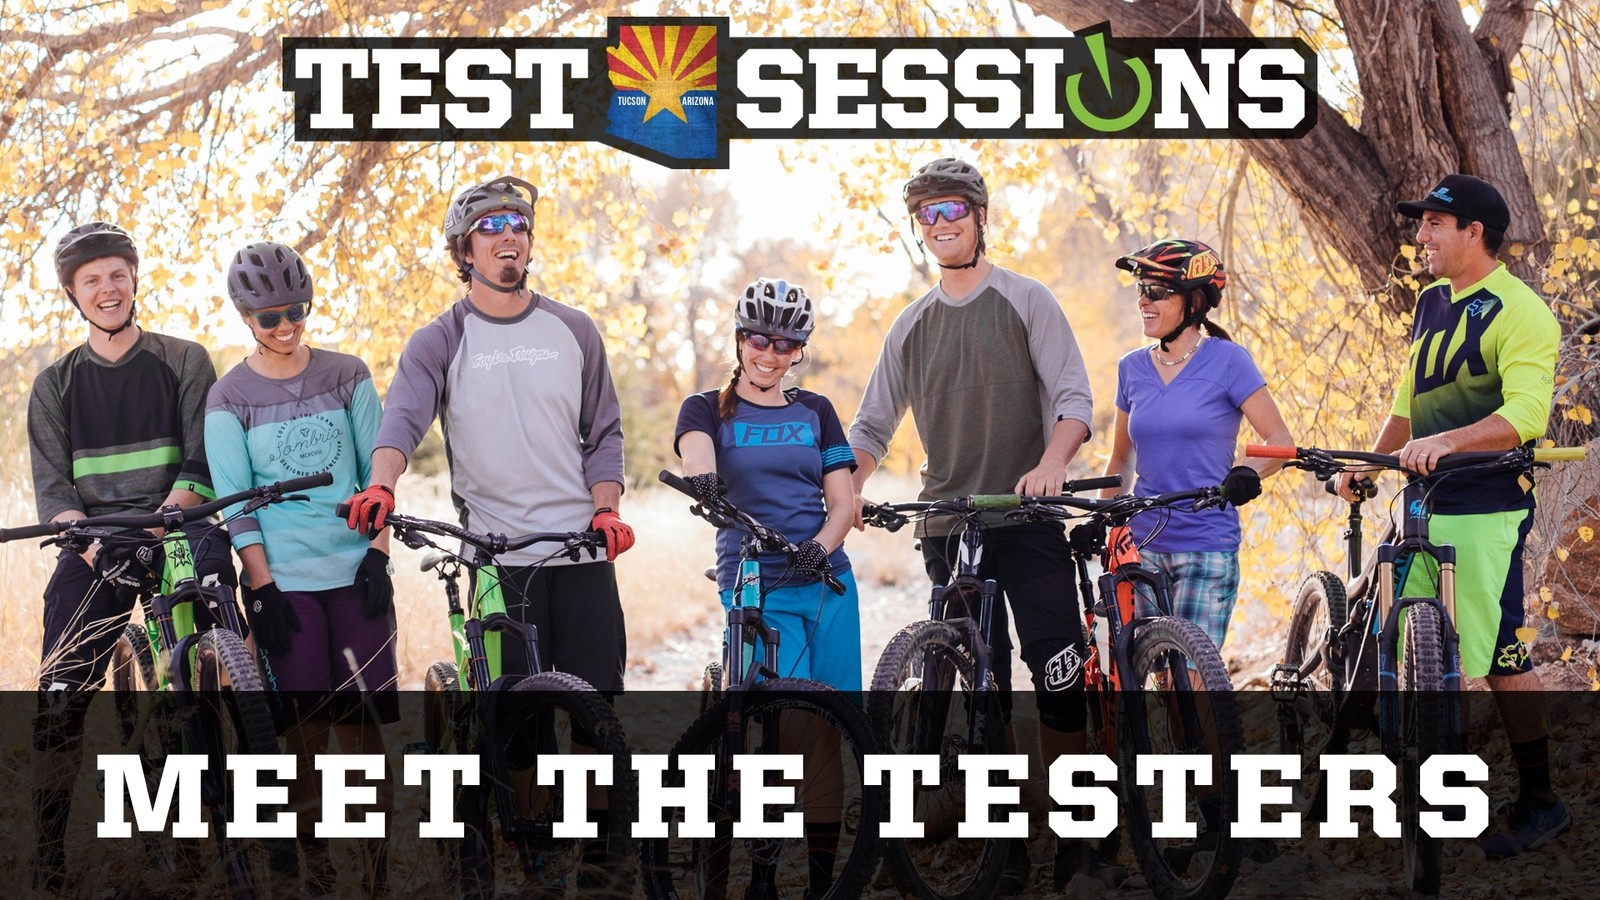 Meet The Testers - 2017 Vital MTB Test Sessions